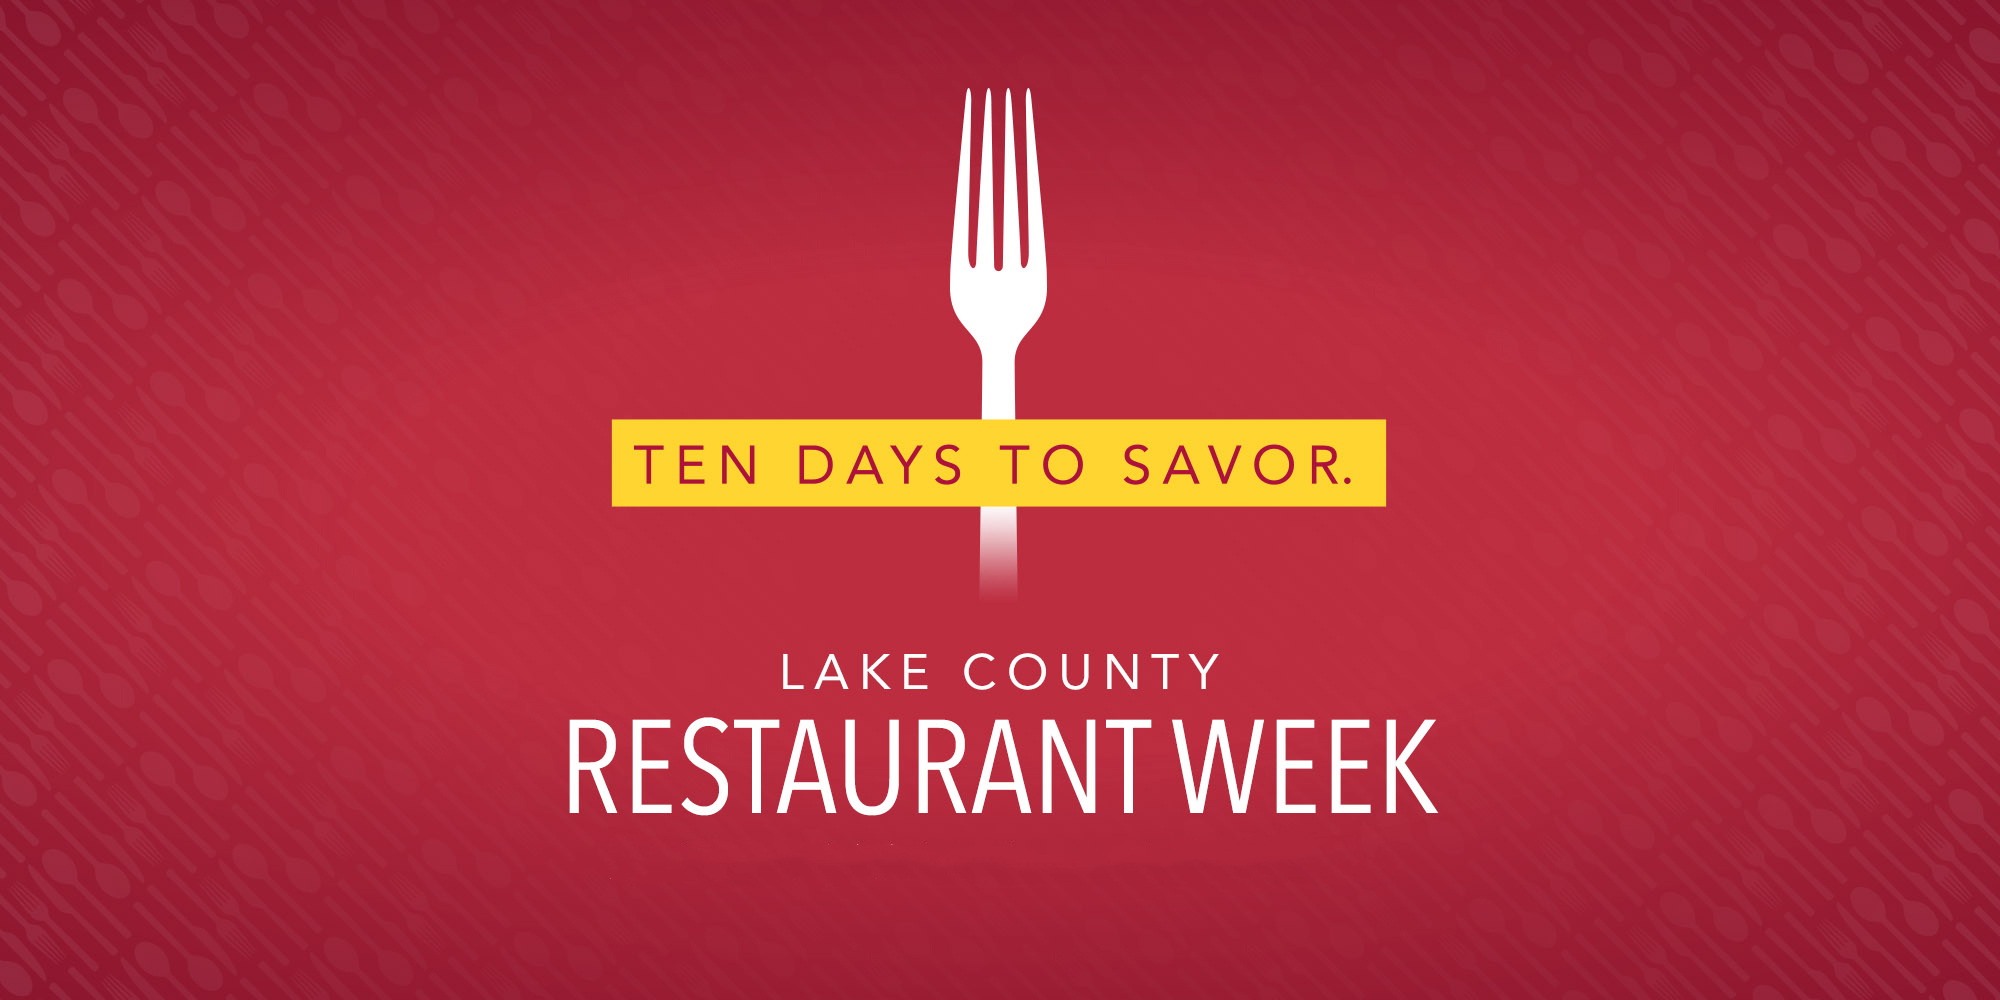 Lake County Restaurant Week: Ten Days to Savor 2021